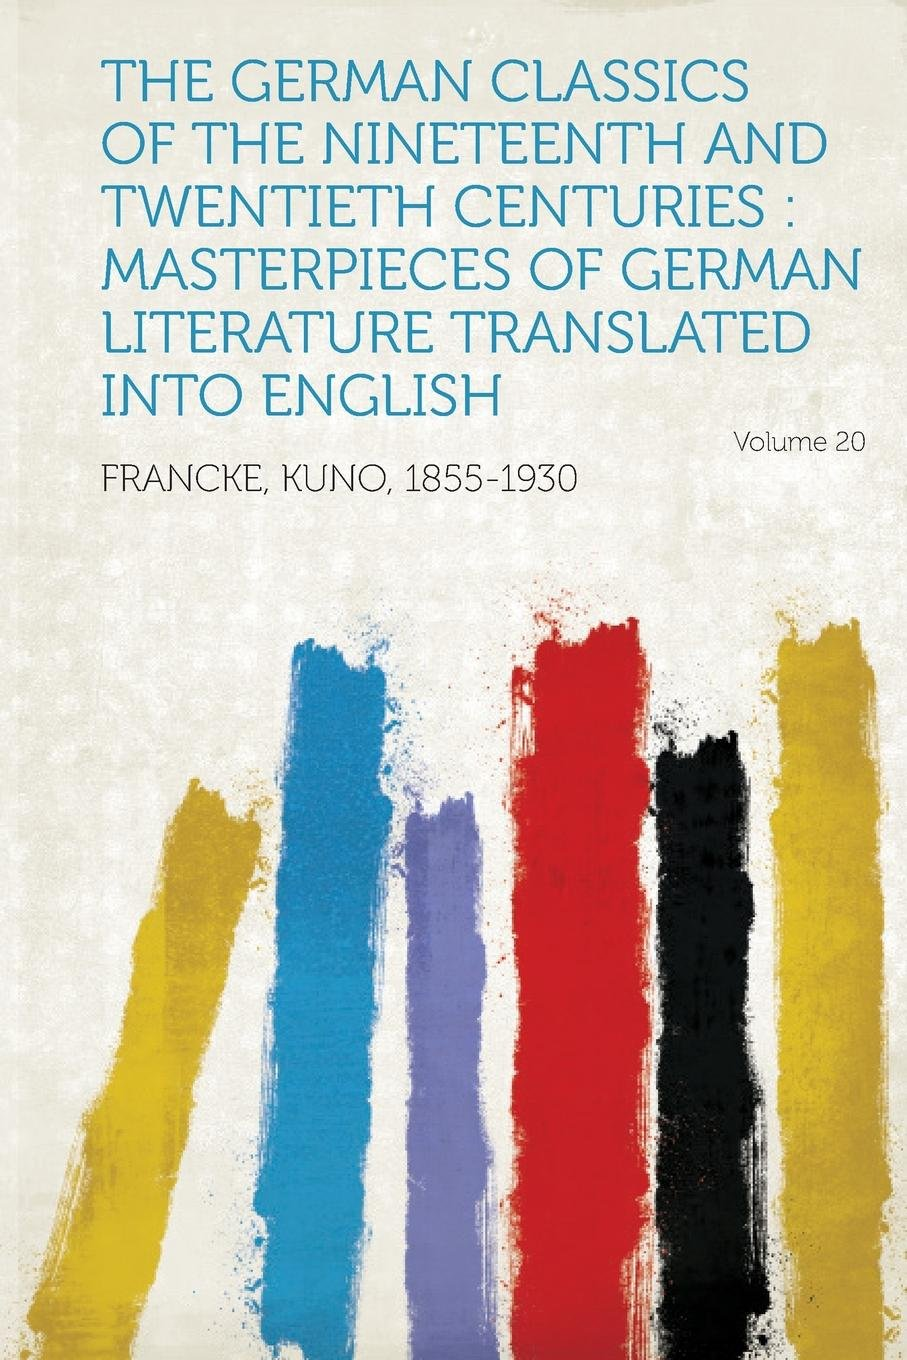 The German Classics of the Nineteenth and Twentieth Centuries: Masterpieces of German Literature Translated Into English Volume 20 pdf